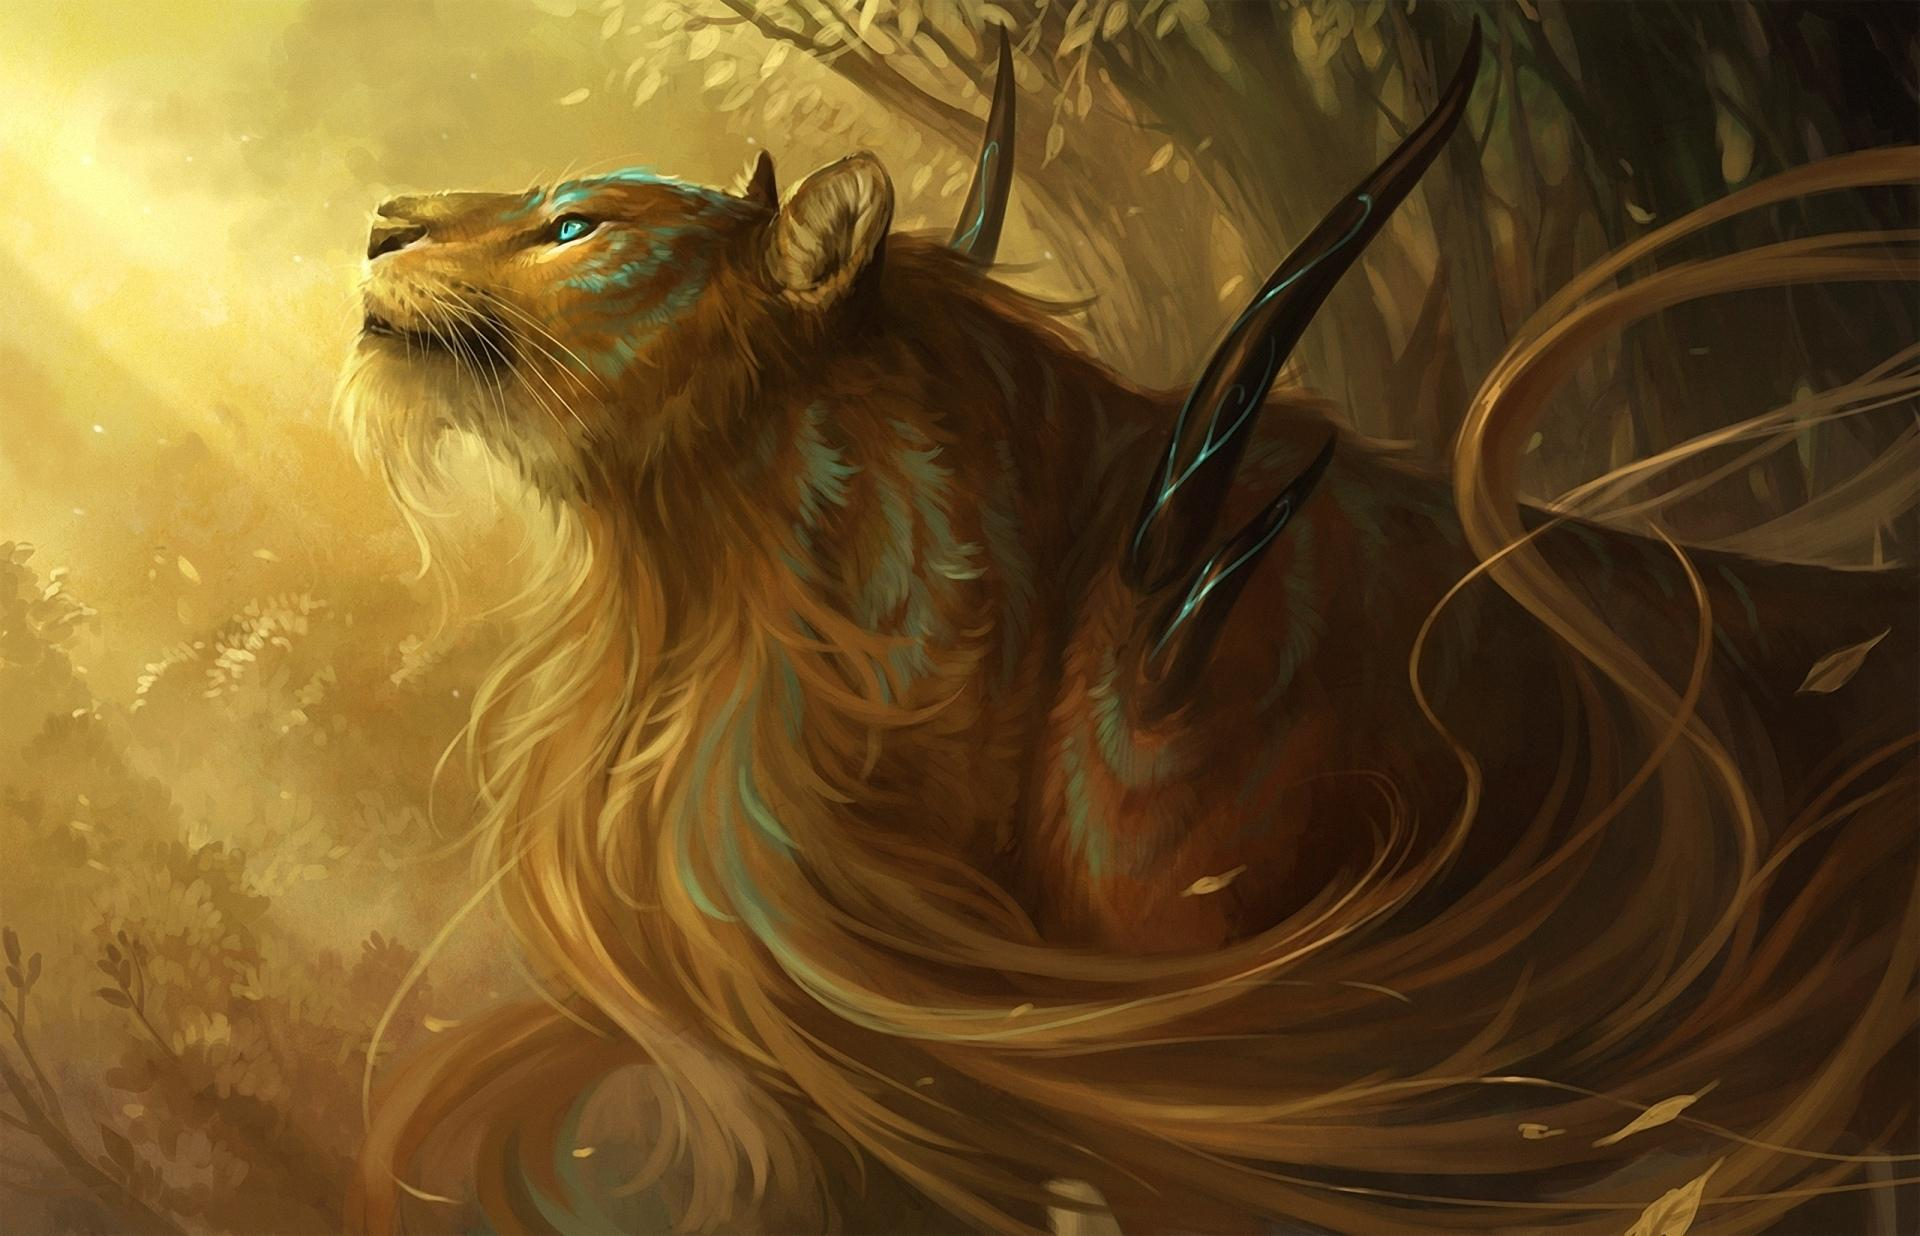 Lion Fantasy wallpapers HD quality